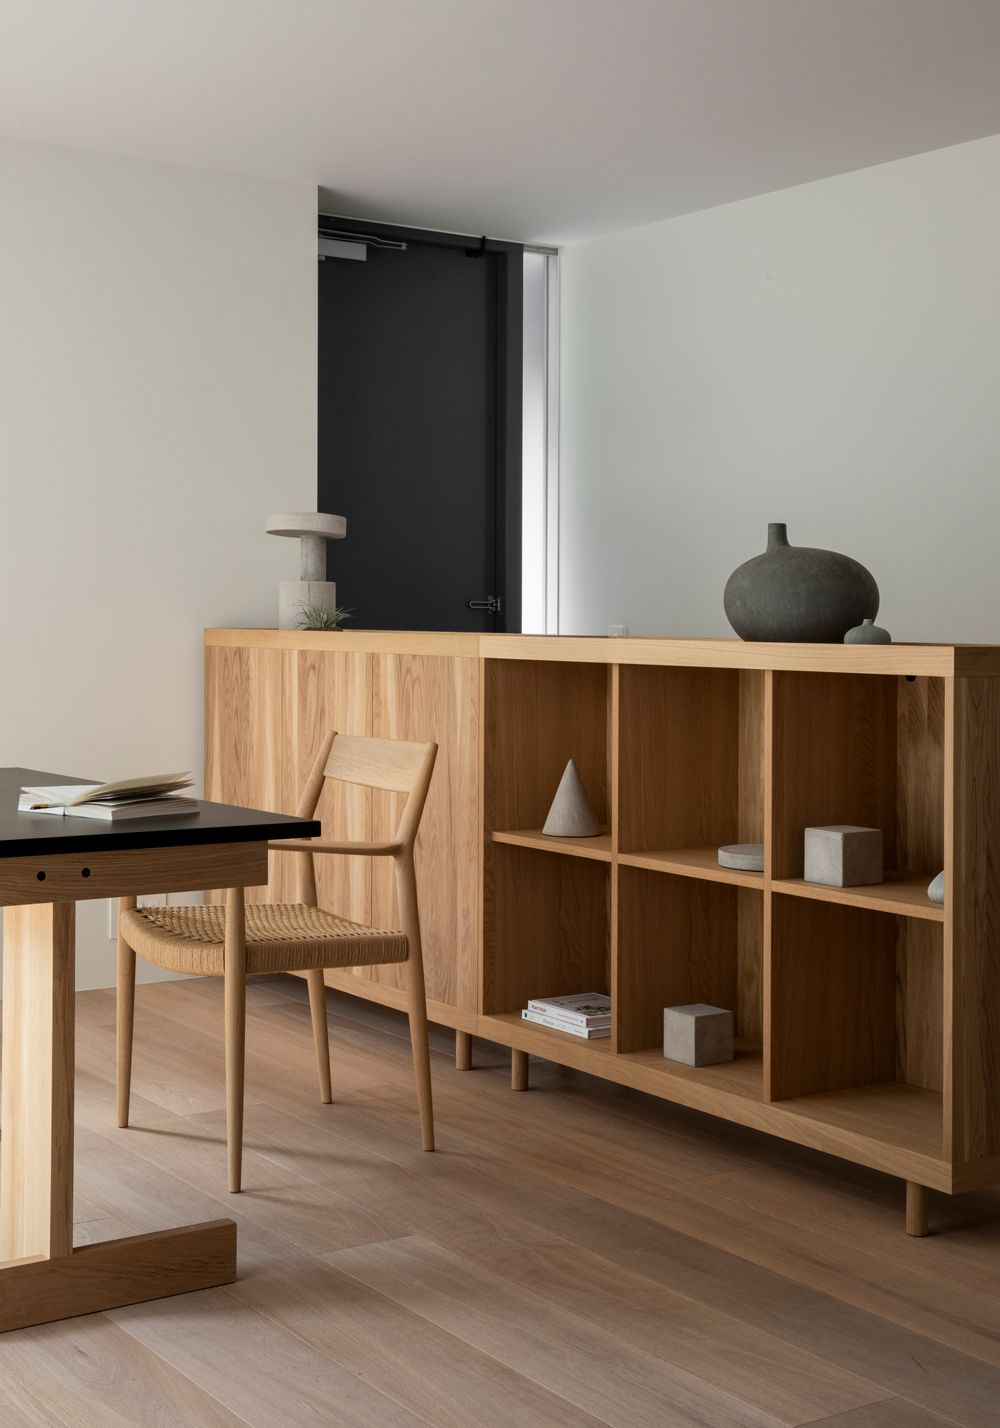 Take a Peek at This Stunning Minimal Residence Rooted in Japanese and Scandinavian Design Traditions - Nordic Design